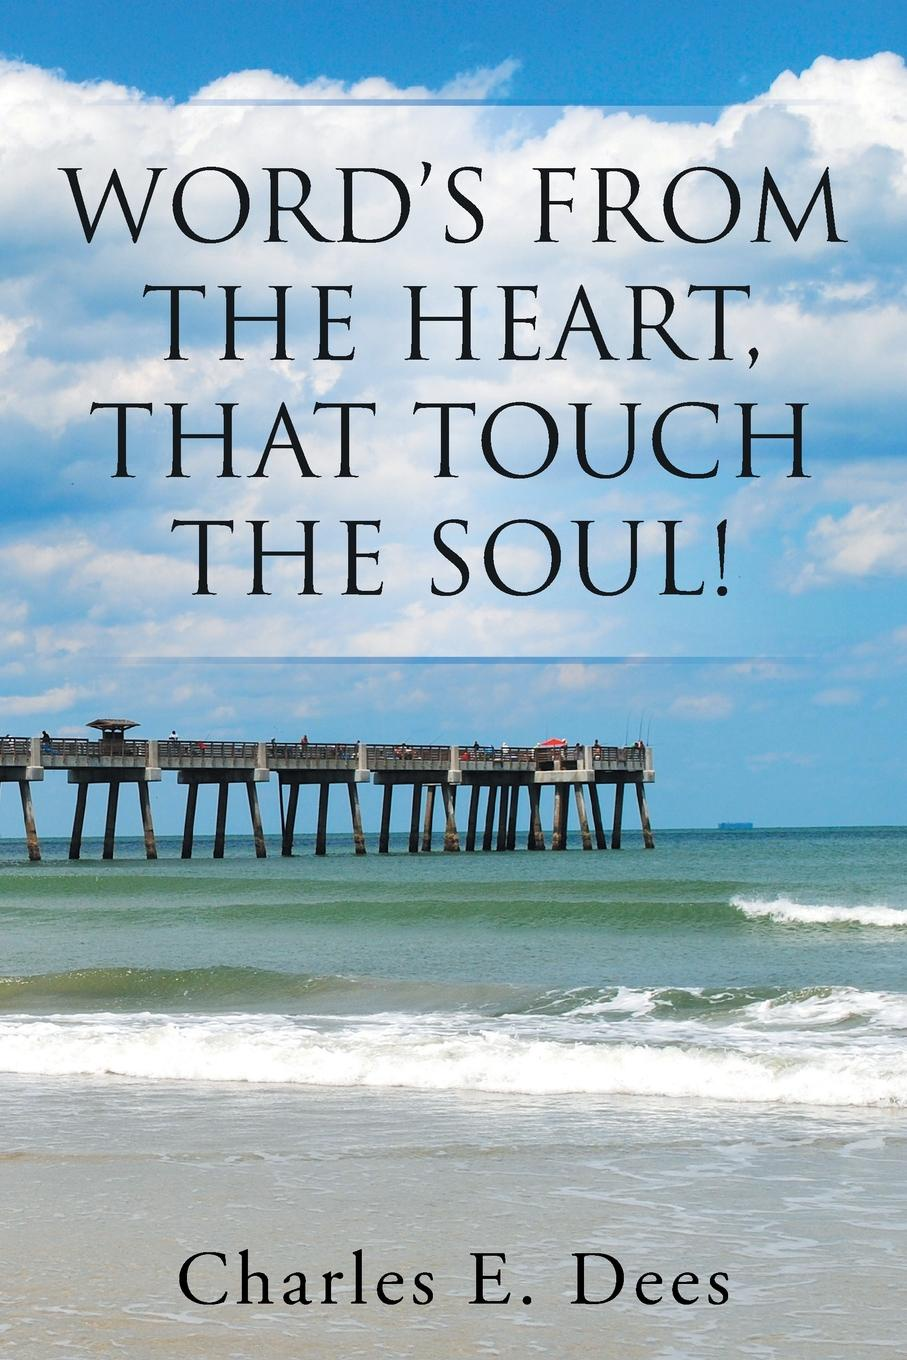 Charles E. Dees Word's from the Heart, That Touch the Soul! kevin lindsey memoirs of the heart visions from the soul